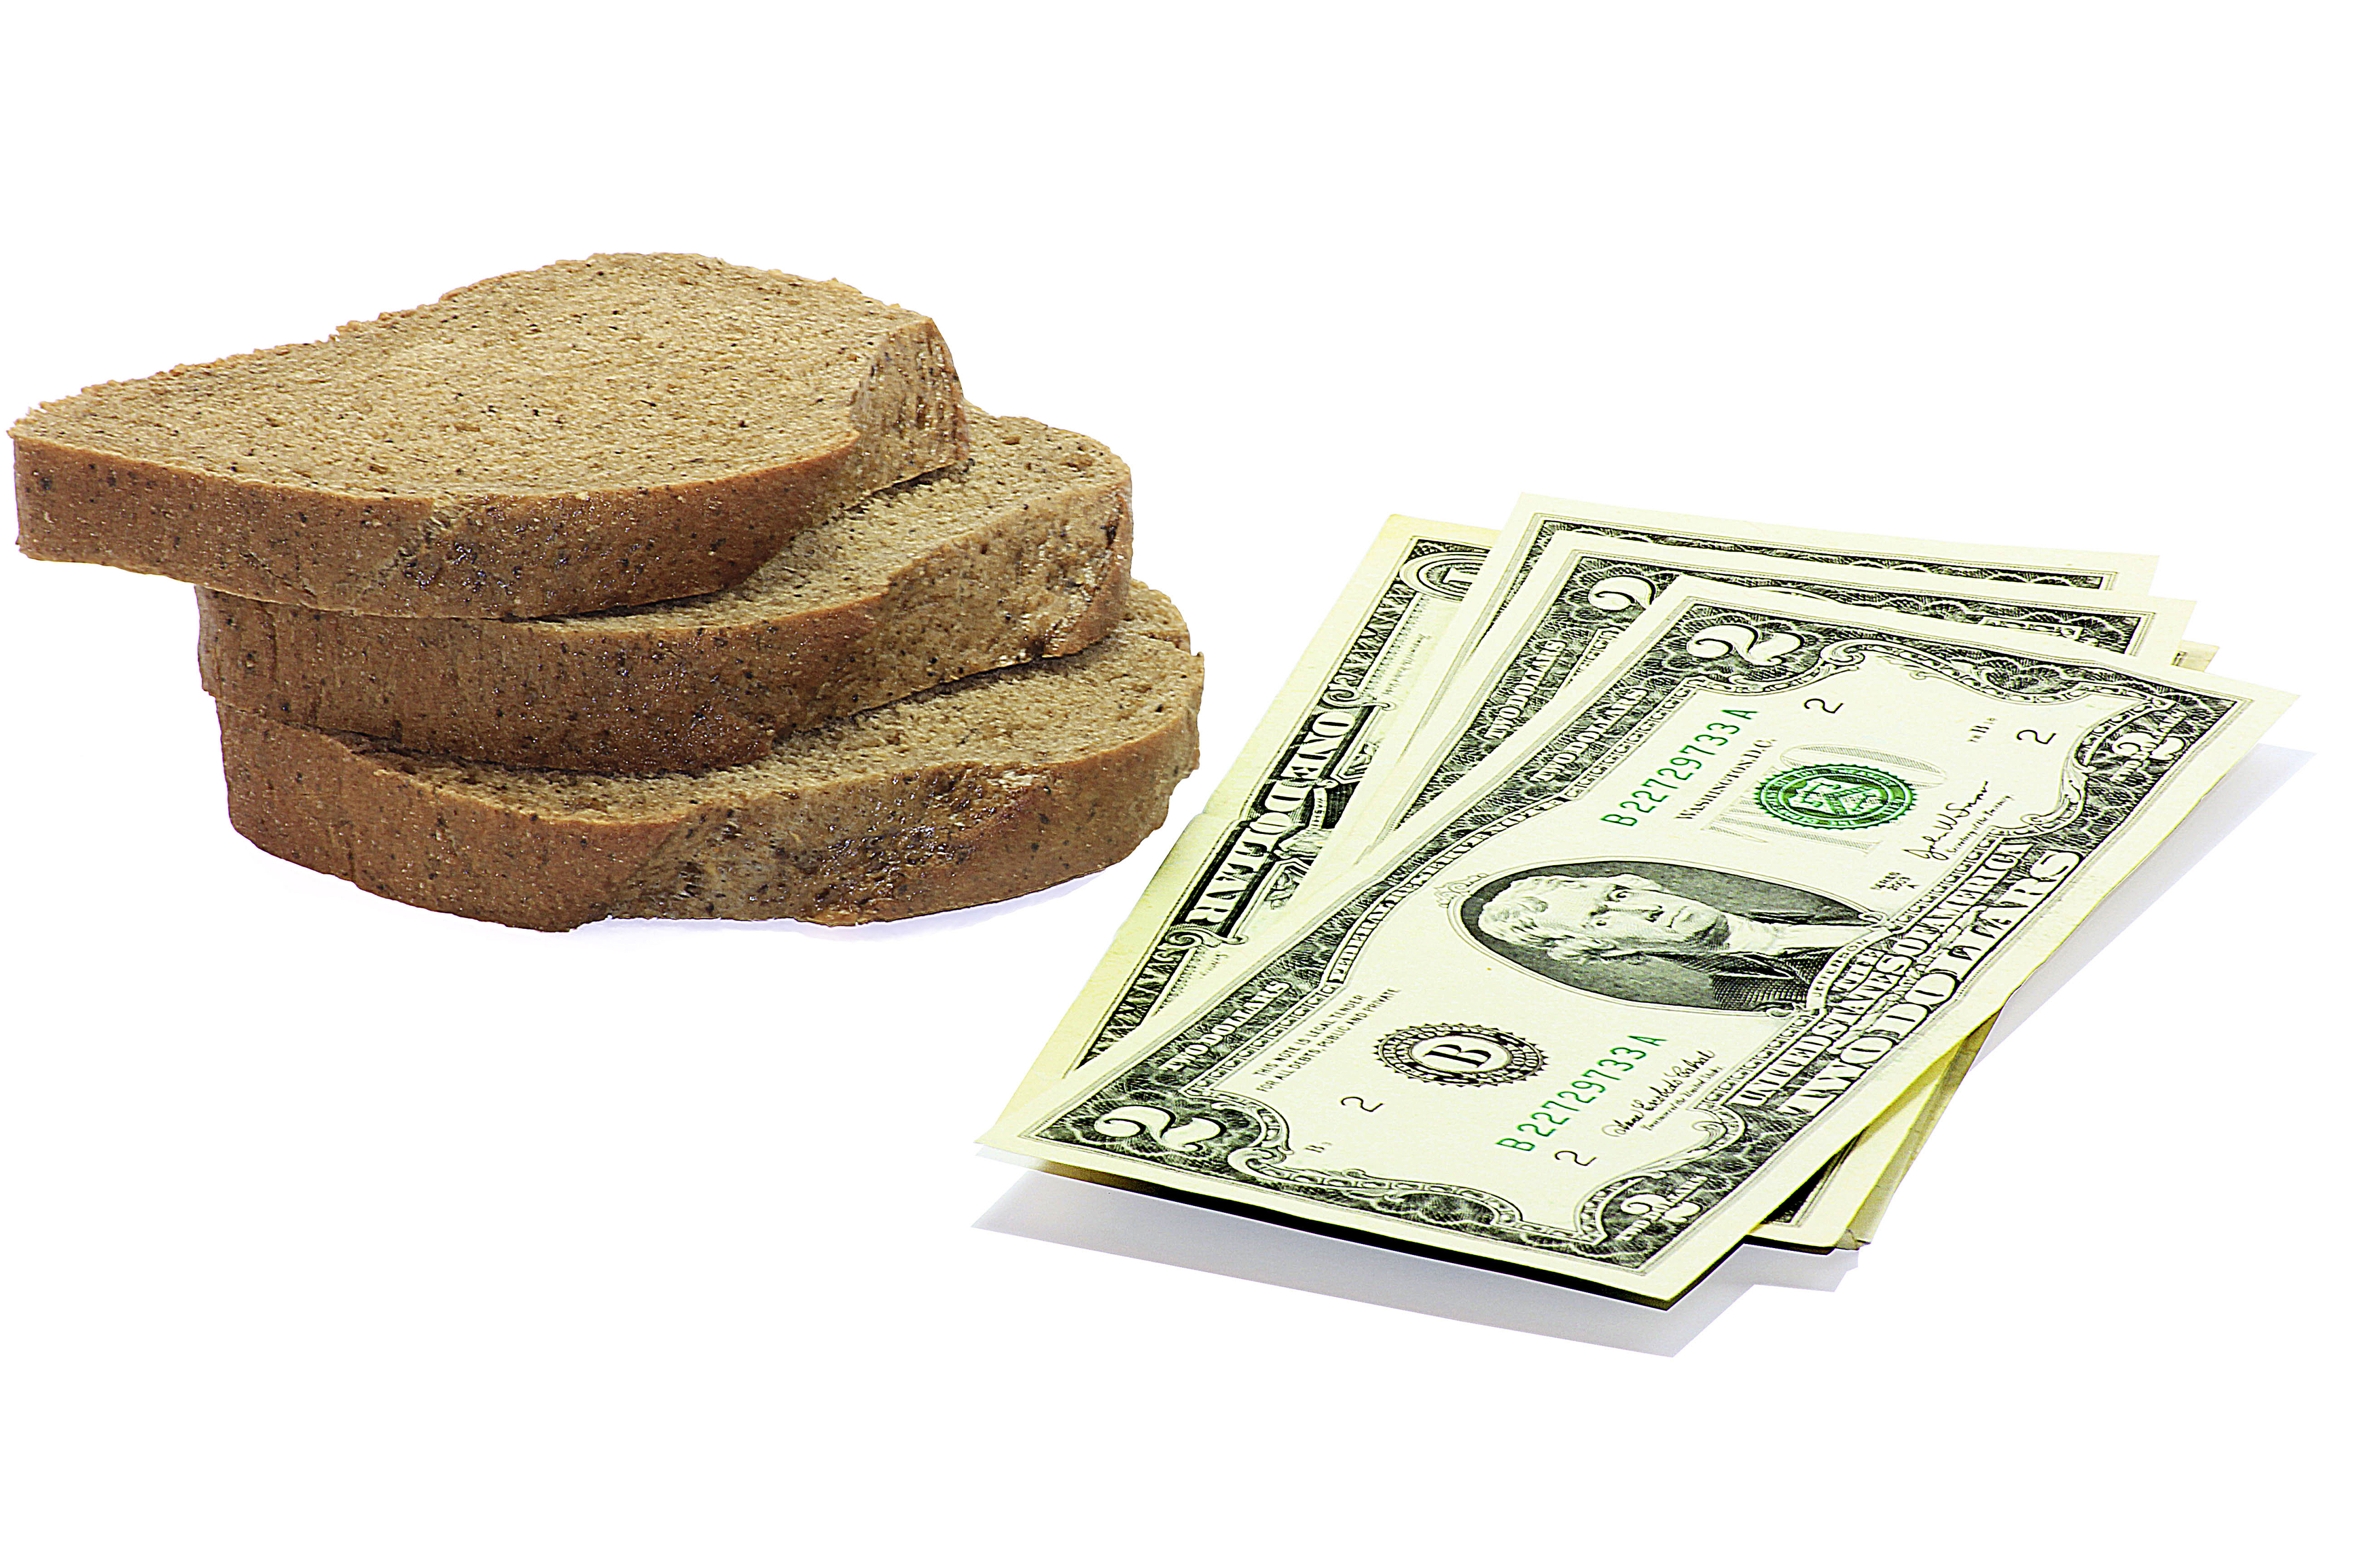 Slices of bread next to a stack of dollar bills.